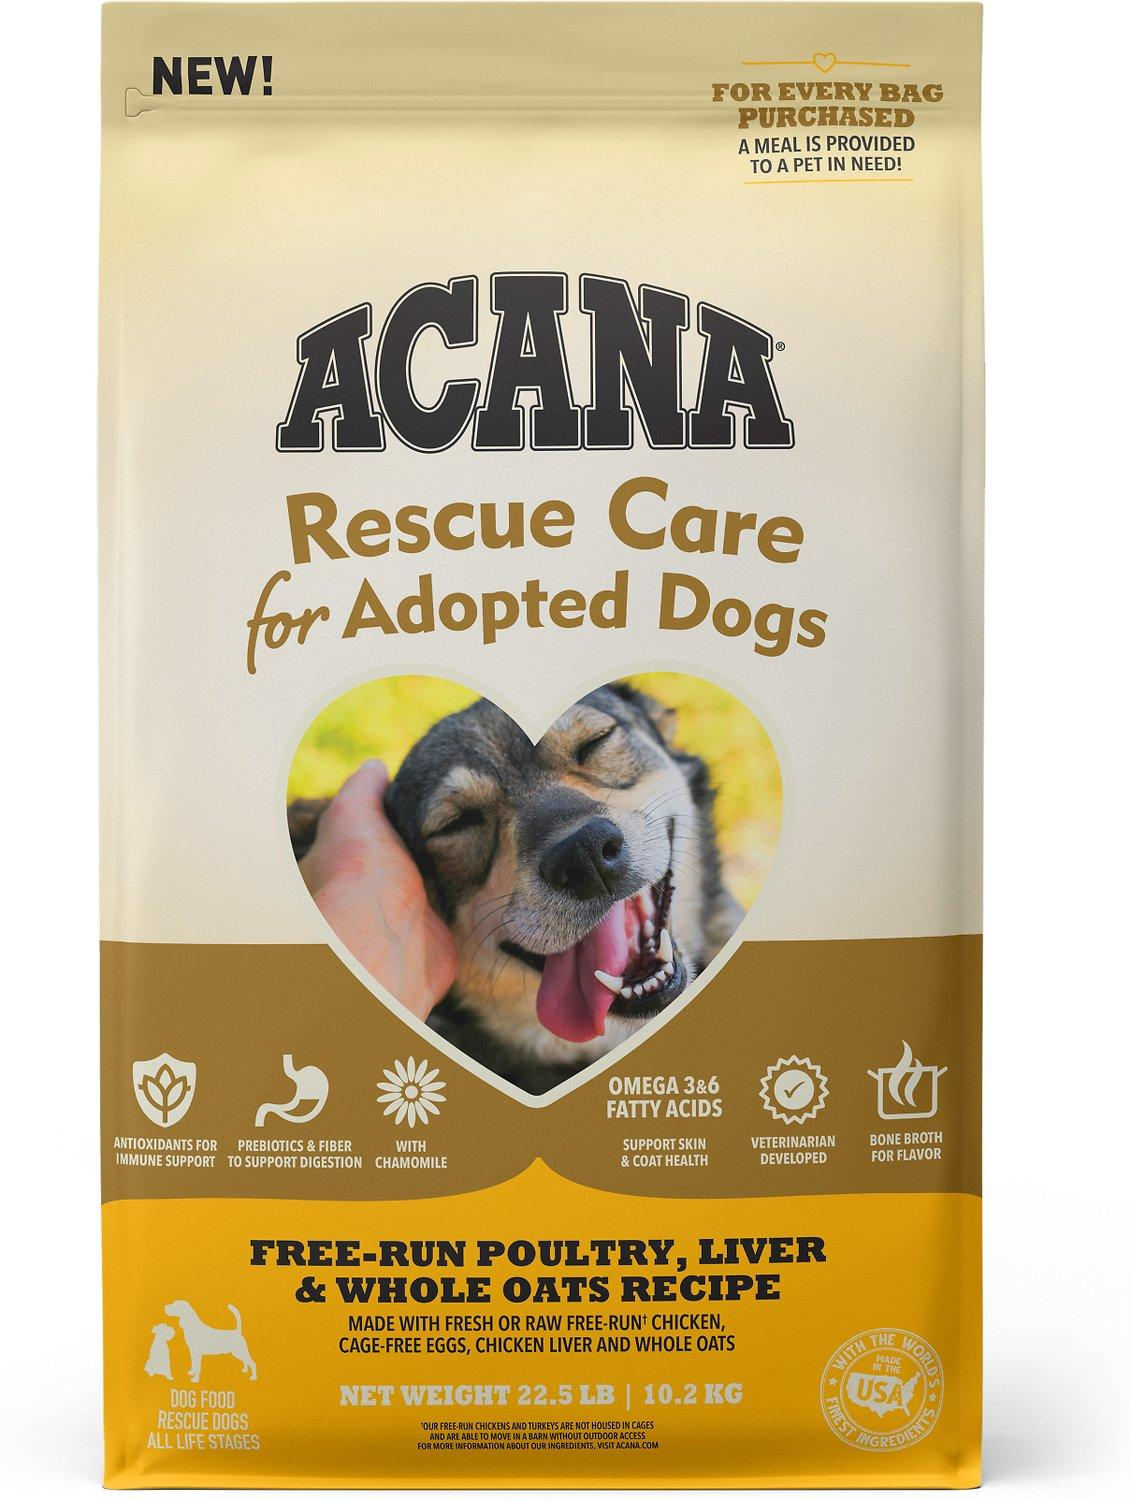 ACANA Rescue Care for Adopted Dogs Poultry, Liver & Oats Dry Dog Food, 22.5-lb